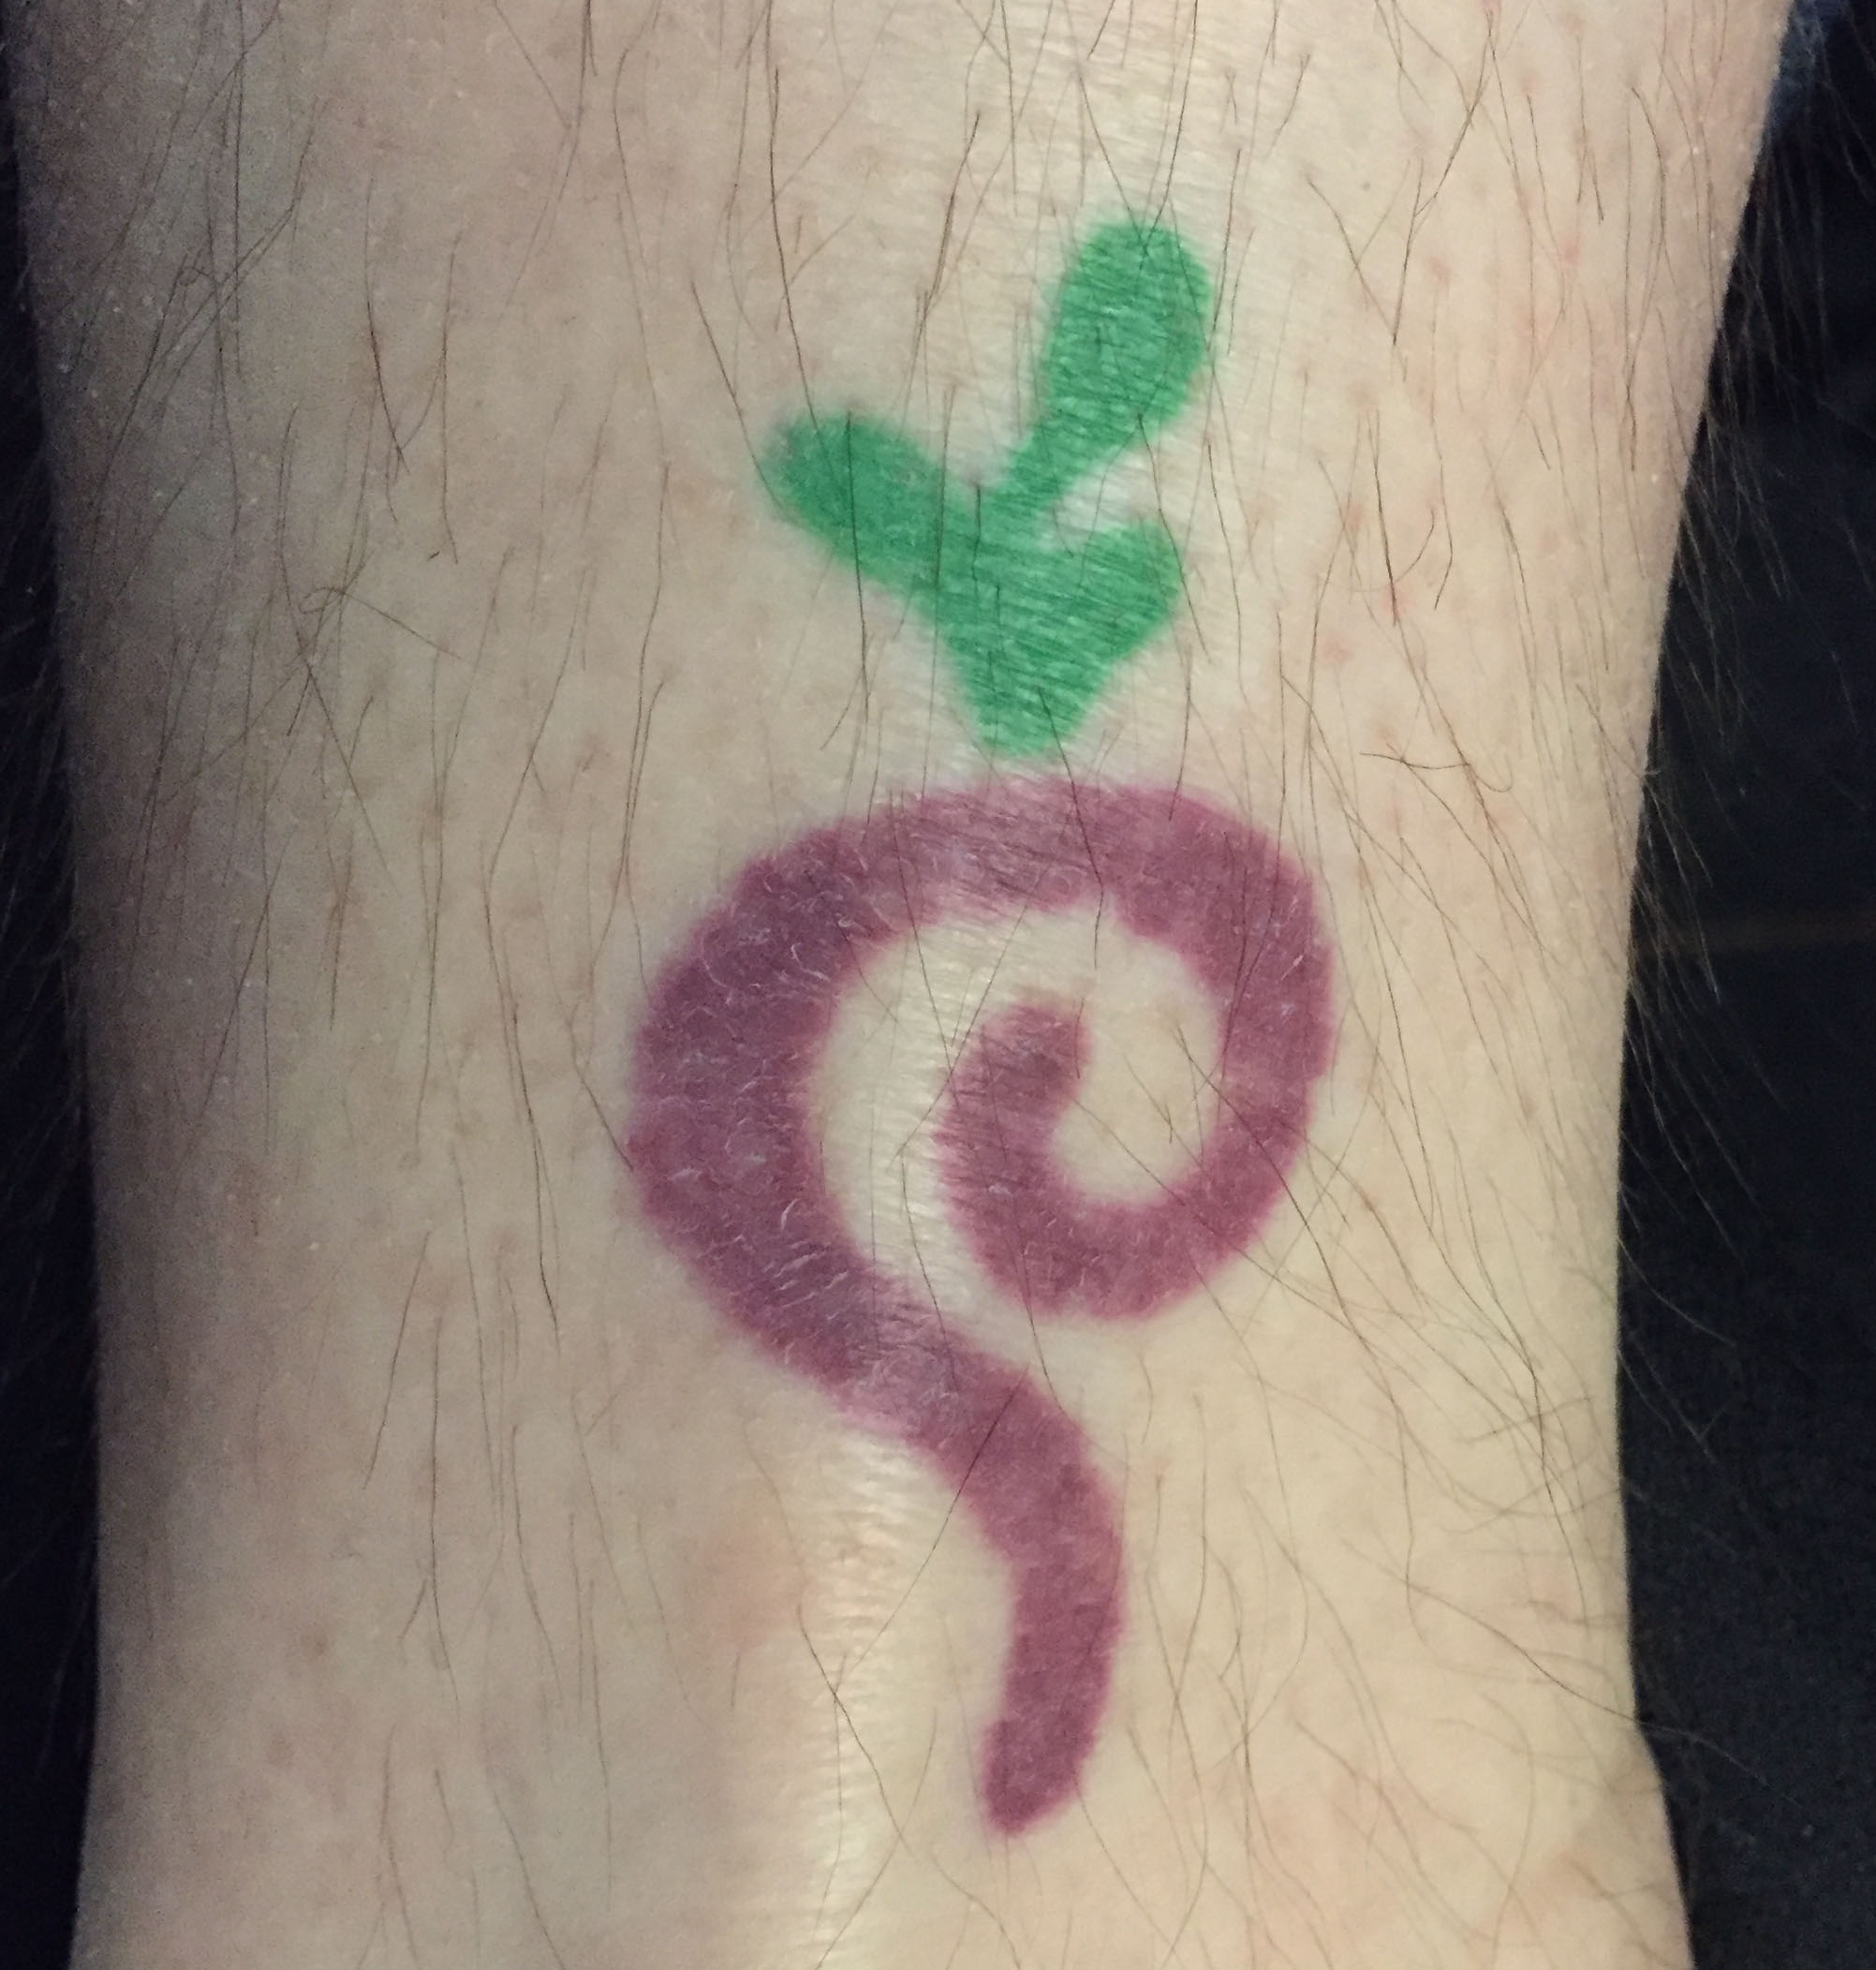 Deadbeet tattoo as of 2015